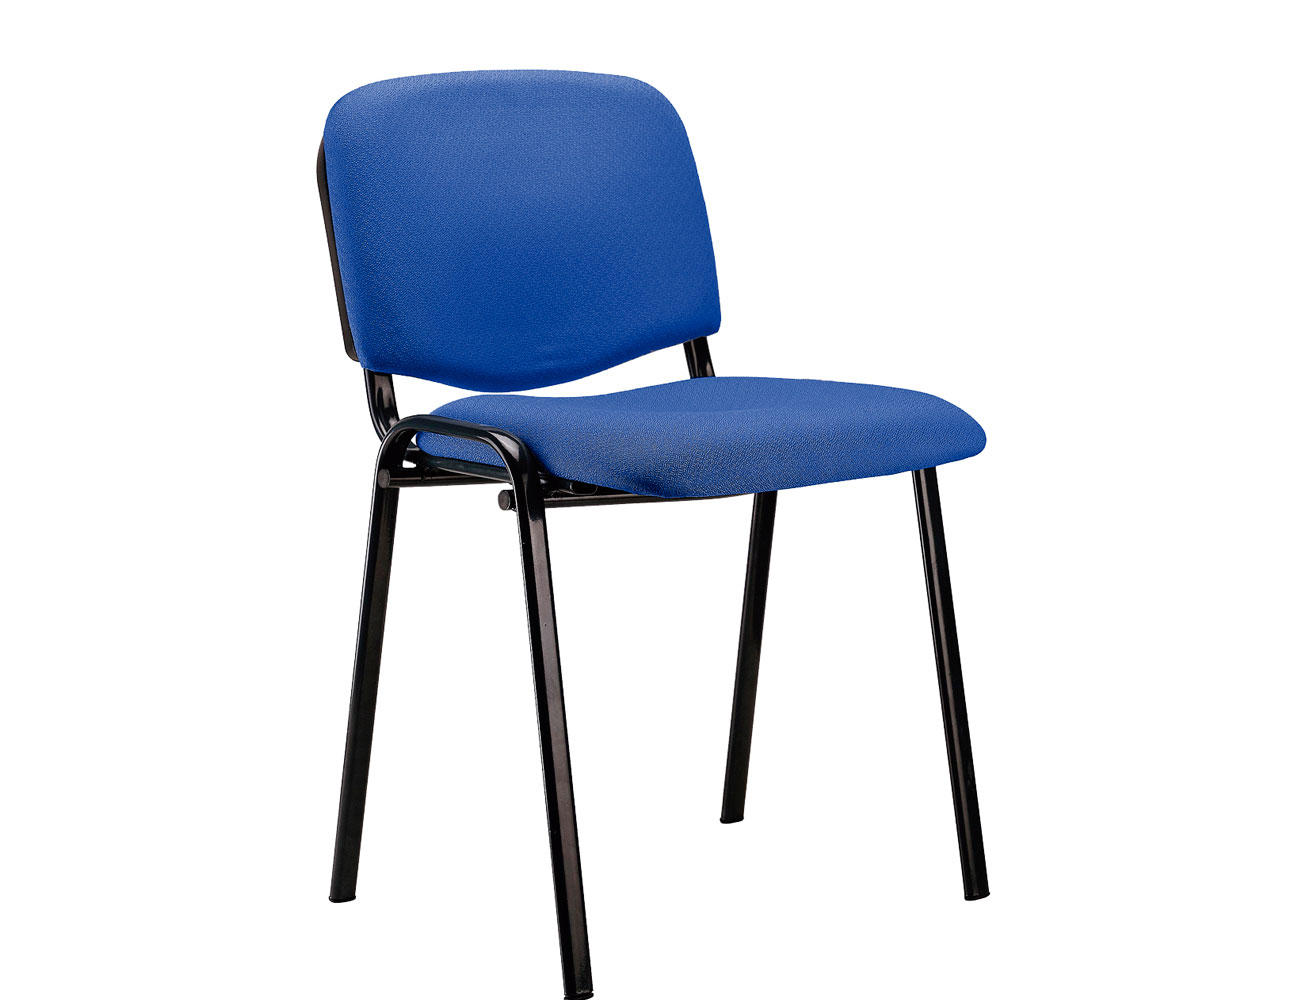 Silla confidente apilable azul